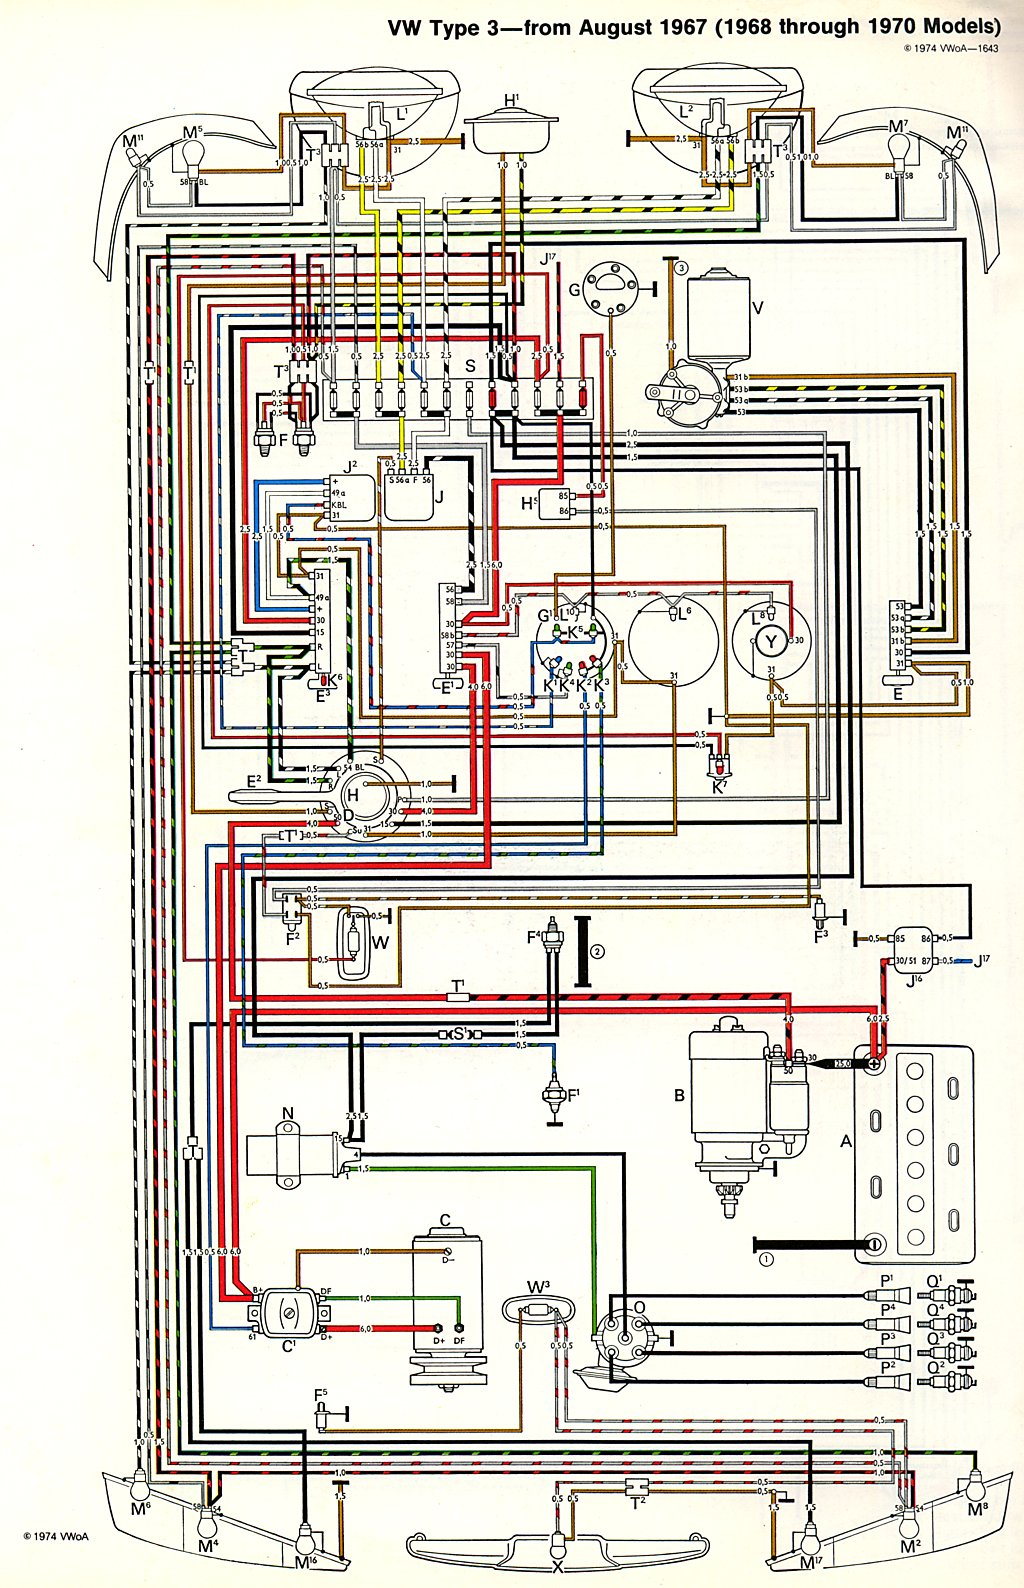 1972 vw bus wiring diagram leeson 3 hp motor thesamba type diagrams